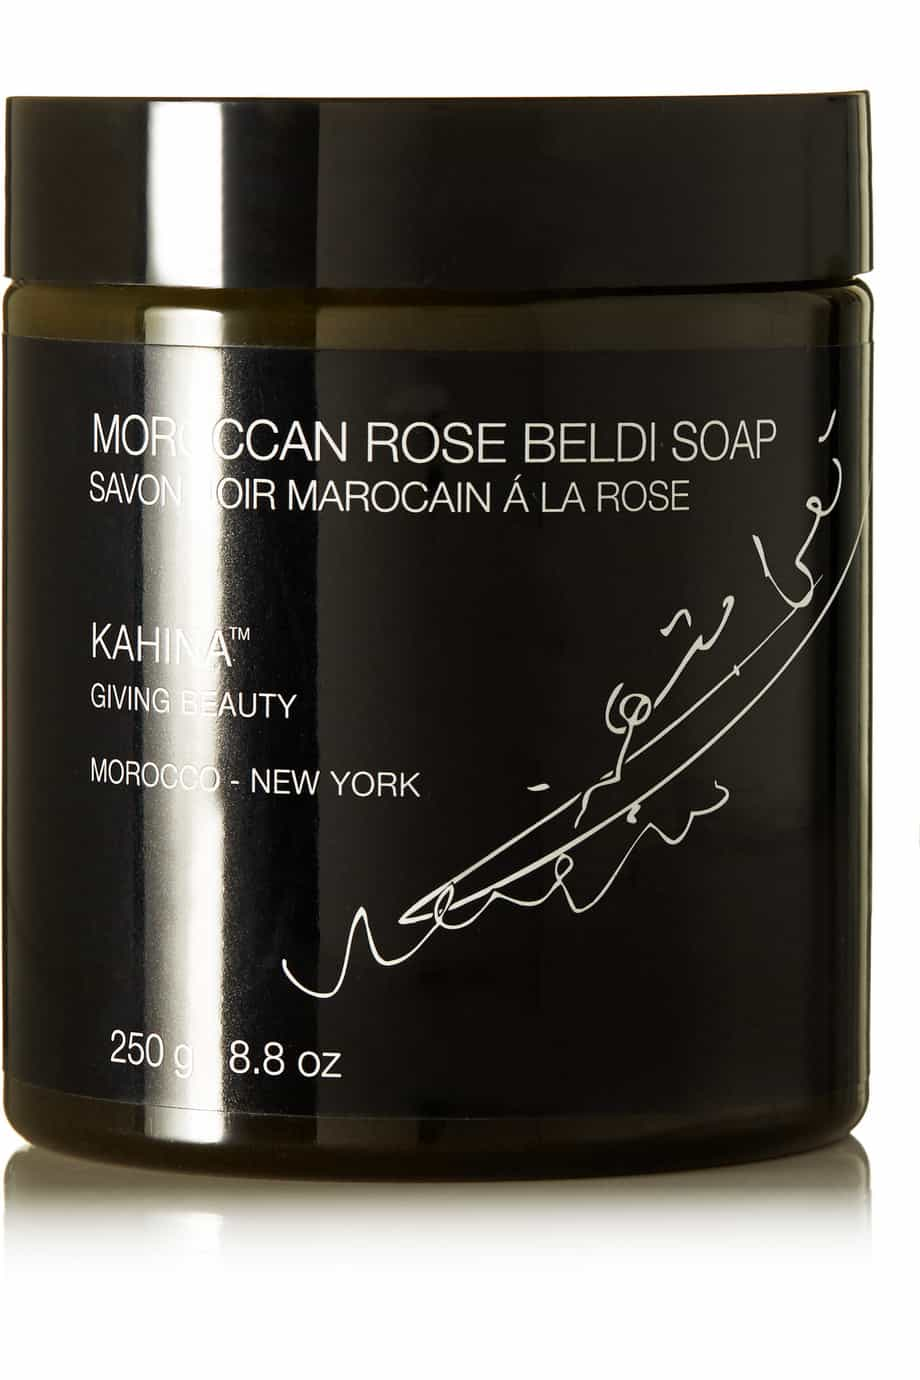 Kahina giving beauty moroccan rose beldi soap